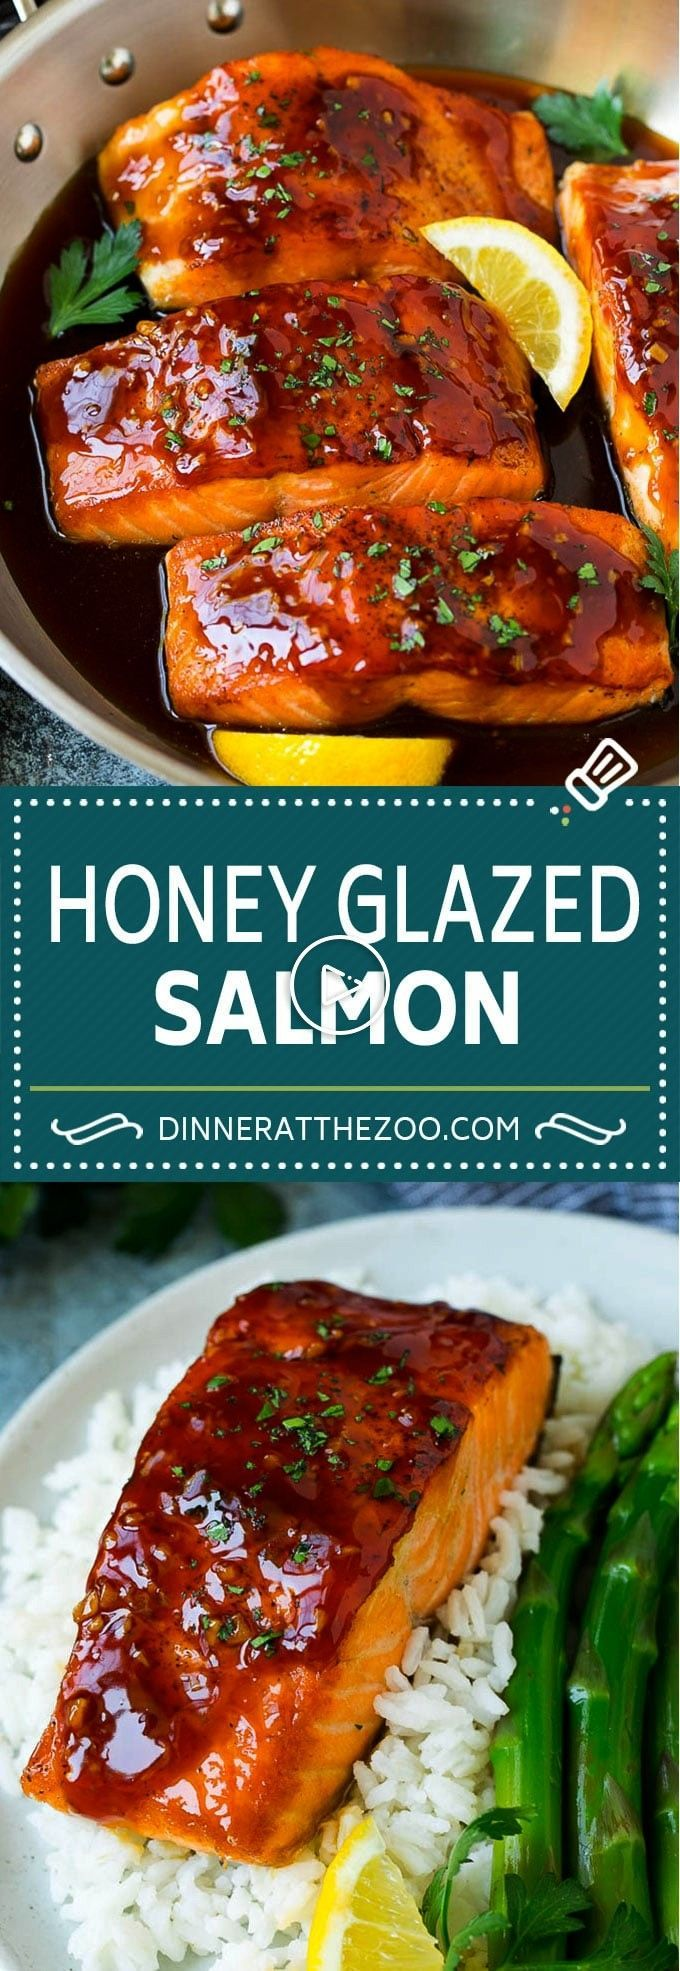 #dinneratthezoo #salmonfood #glazed #salmon #recipe #seared #dinner #garlic #honey #fishHoney Glazed Salmon Recipe | Seared Salmon Honey Glazed Salmon Recipe | Seared SalmonHoney Glazed Salmon Recipe | Seared Salmon Honey Glazed Salmon Recipe | Seared Salmon  The best shrimp tacos! Spicy Shrimp Tacos with Garlic Cilantro Lime Slaw - ready in 30 minutes, loaded with flavor. SO YUM! |   Weeknight Dinner's MVP: Honey Garlic Glazed SalmonDelish  Honey Garlic Salmon Recipe | Honey Salmon- Sear... #se #cilantrolimeslaw